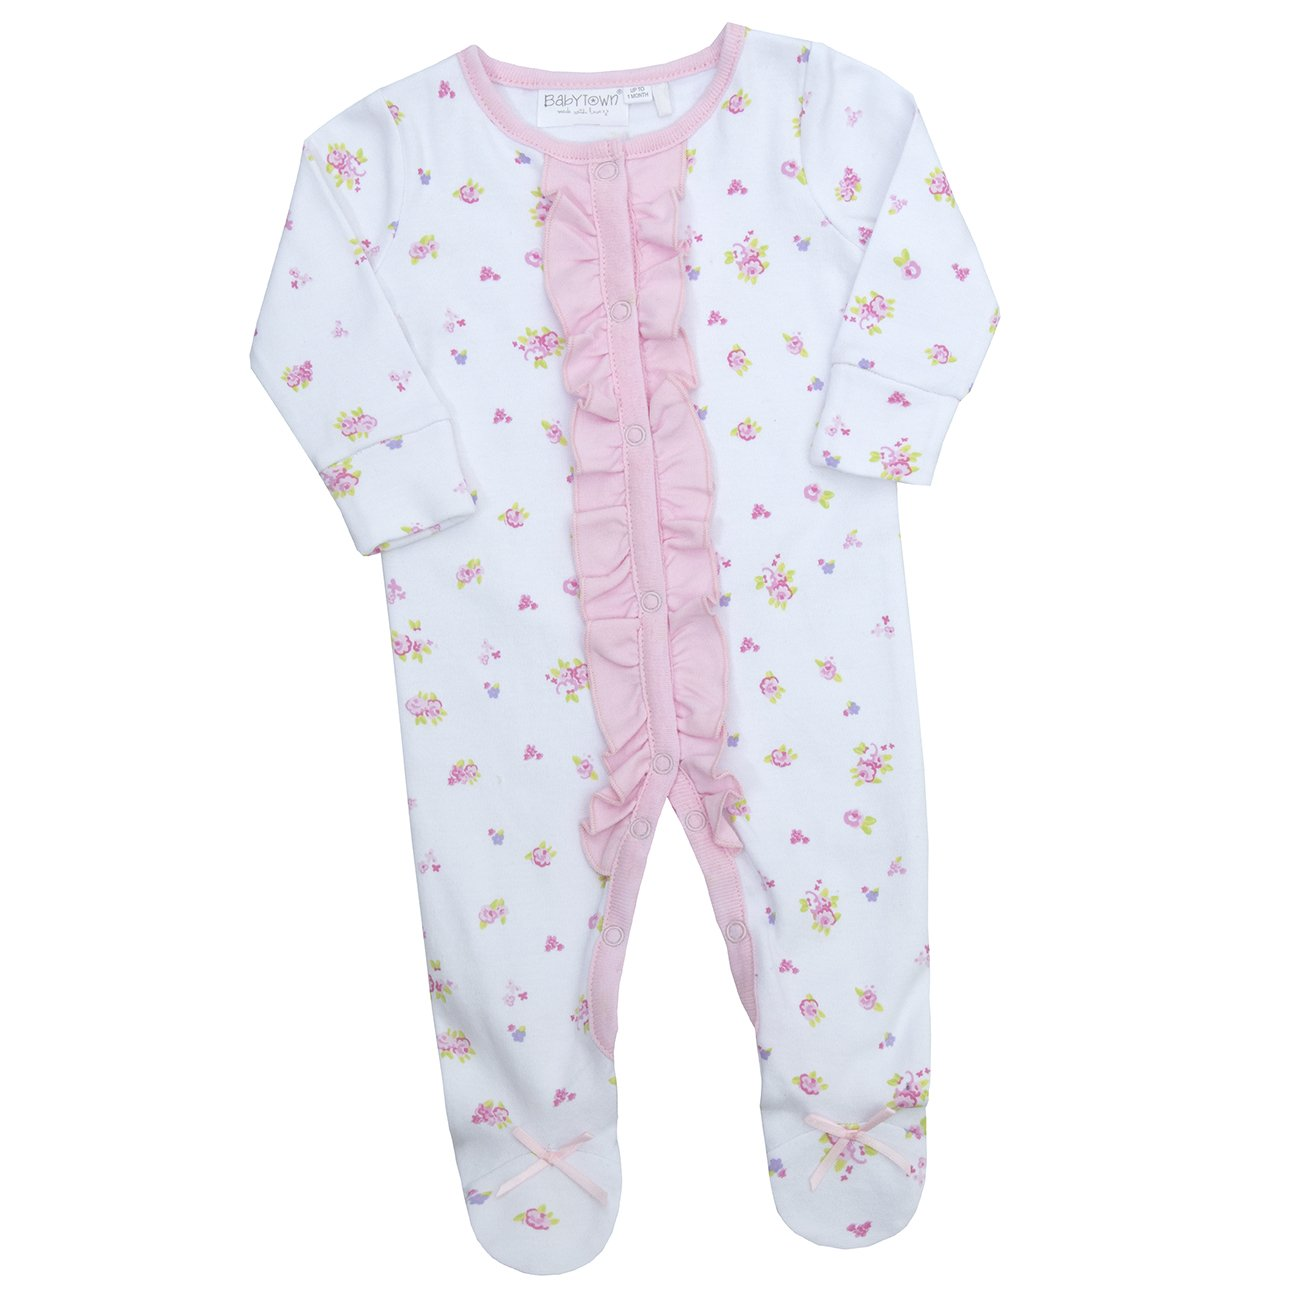 Babytown Premature Baby Angel Sleepsuit Babygrow with Scratch Mittens Pink, White, Blue